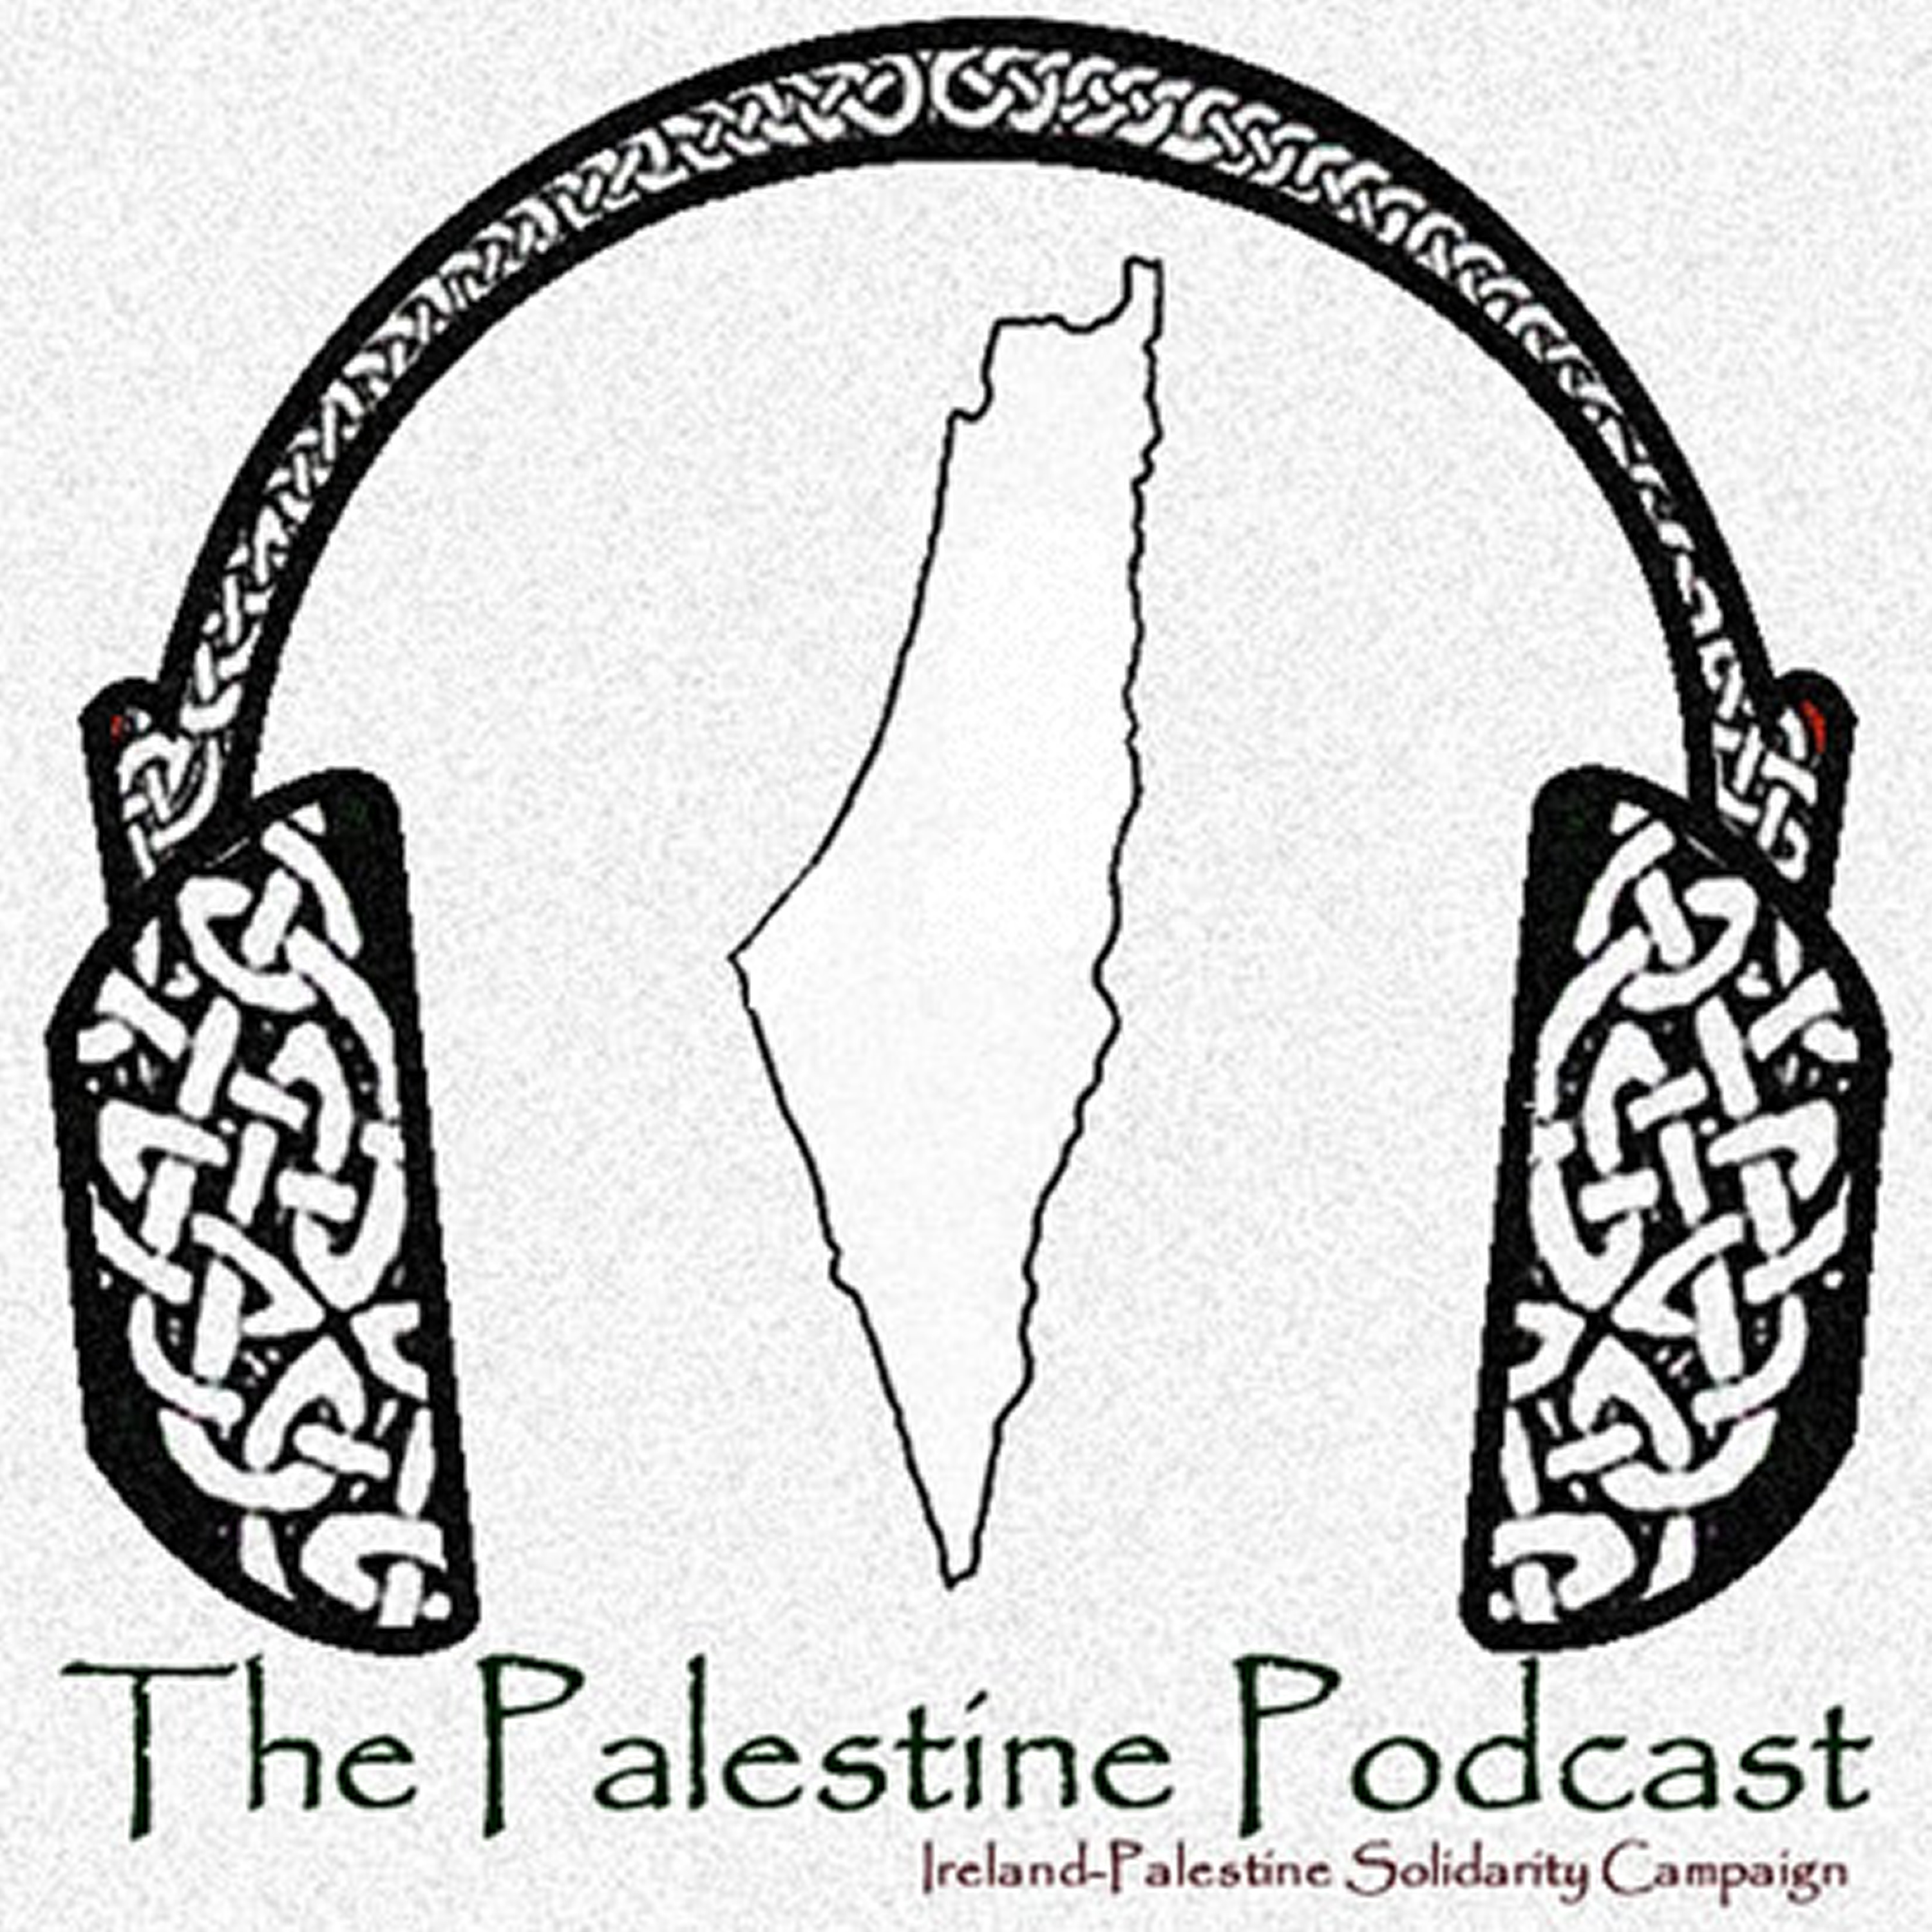 Palestine Podcast #51: 'Britain's Colonial Legacy in Palestine' with Bernard Regan and Karma Nablusi